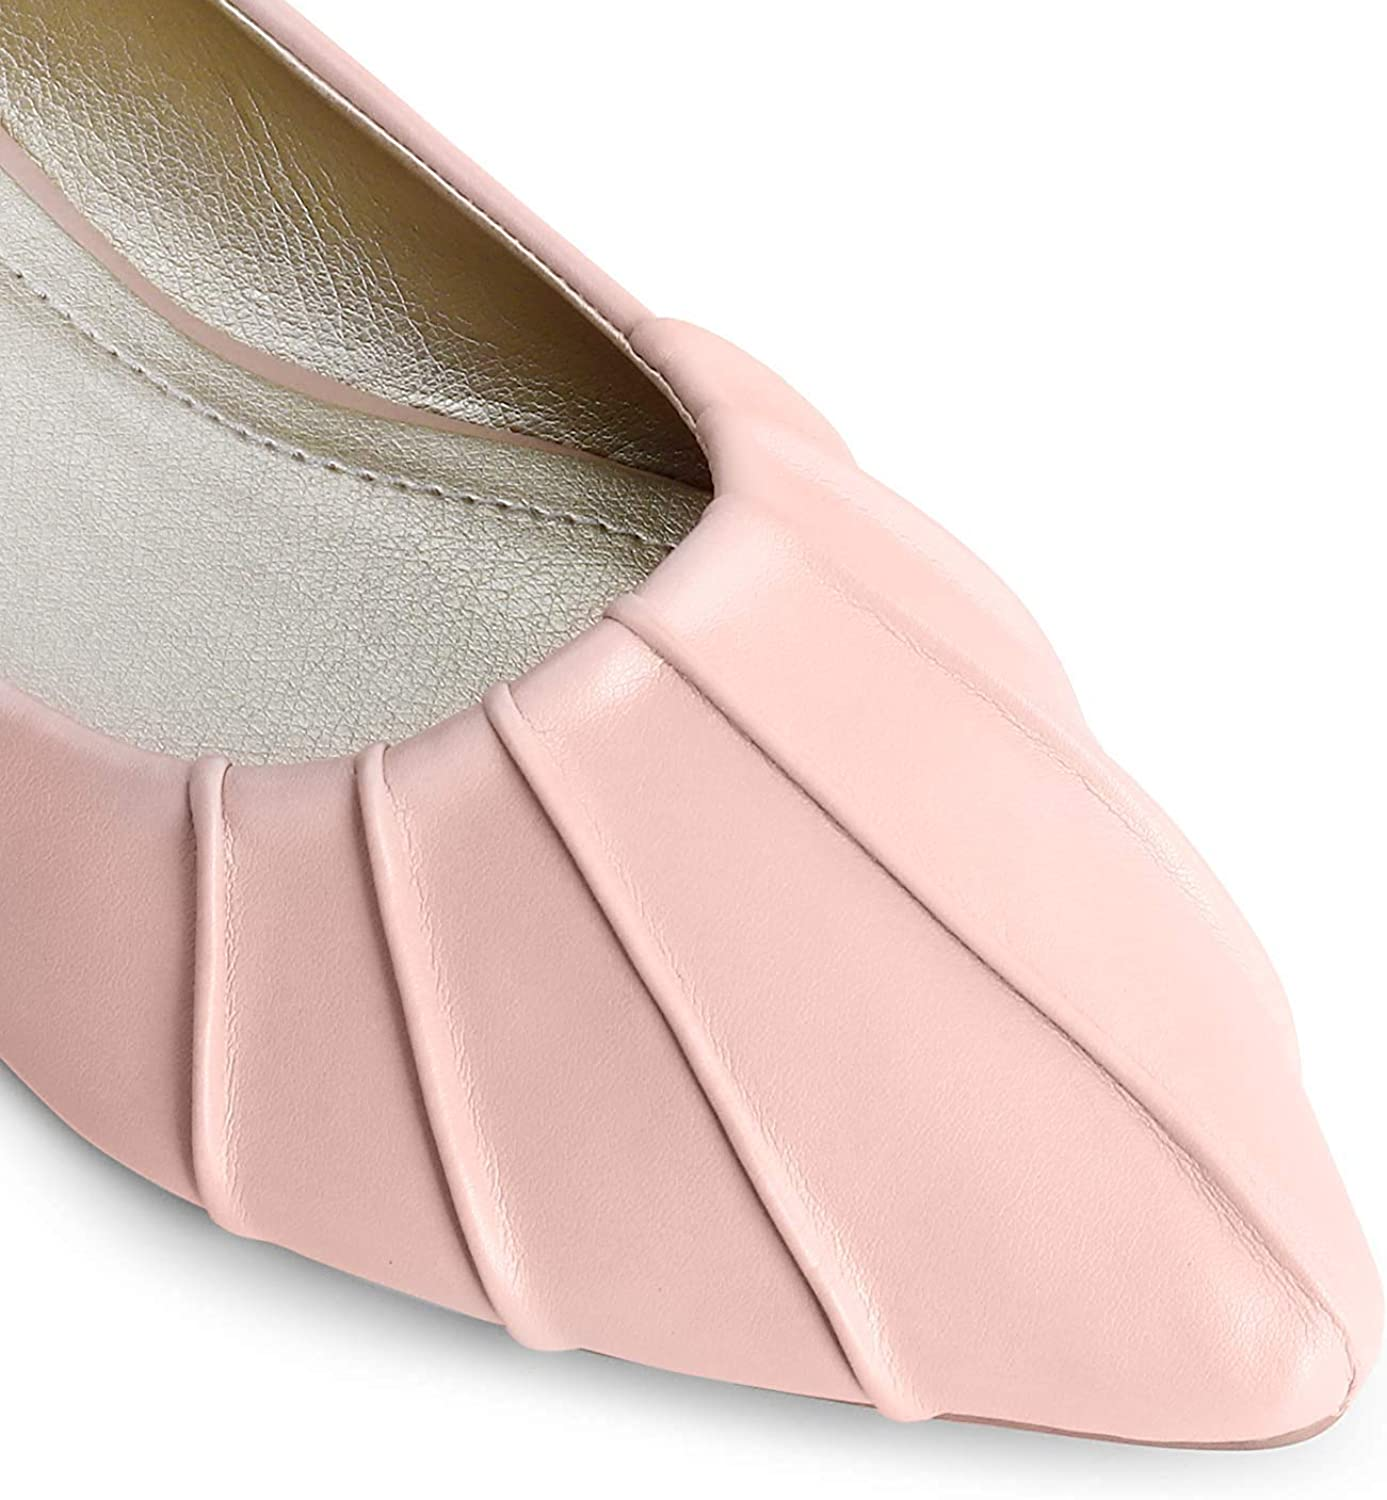 Trary Womens Pleated Pointed Toe Slip on Ballet Flat Shoes